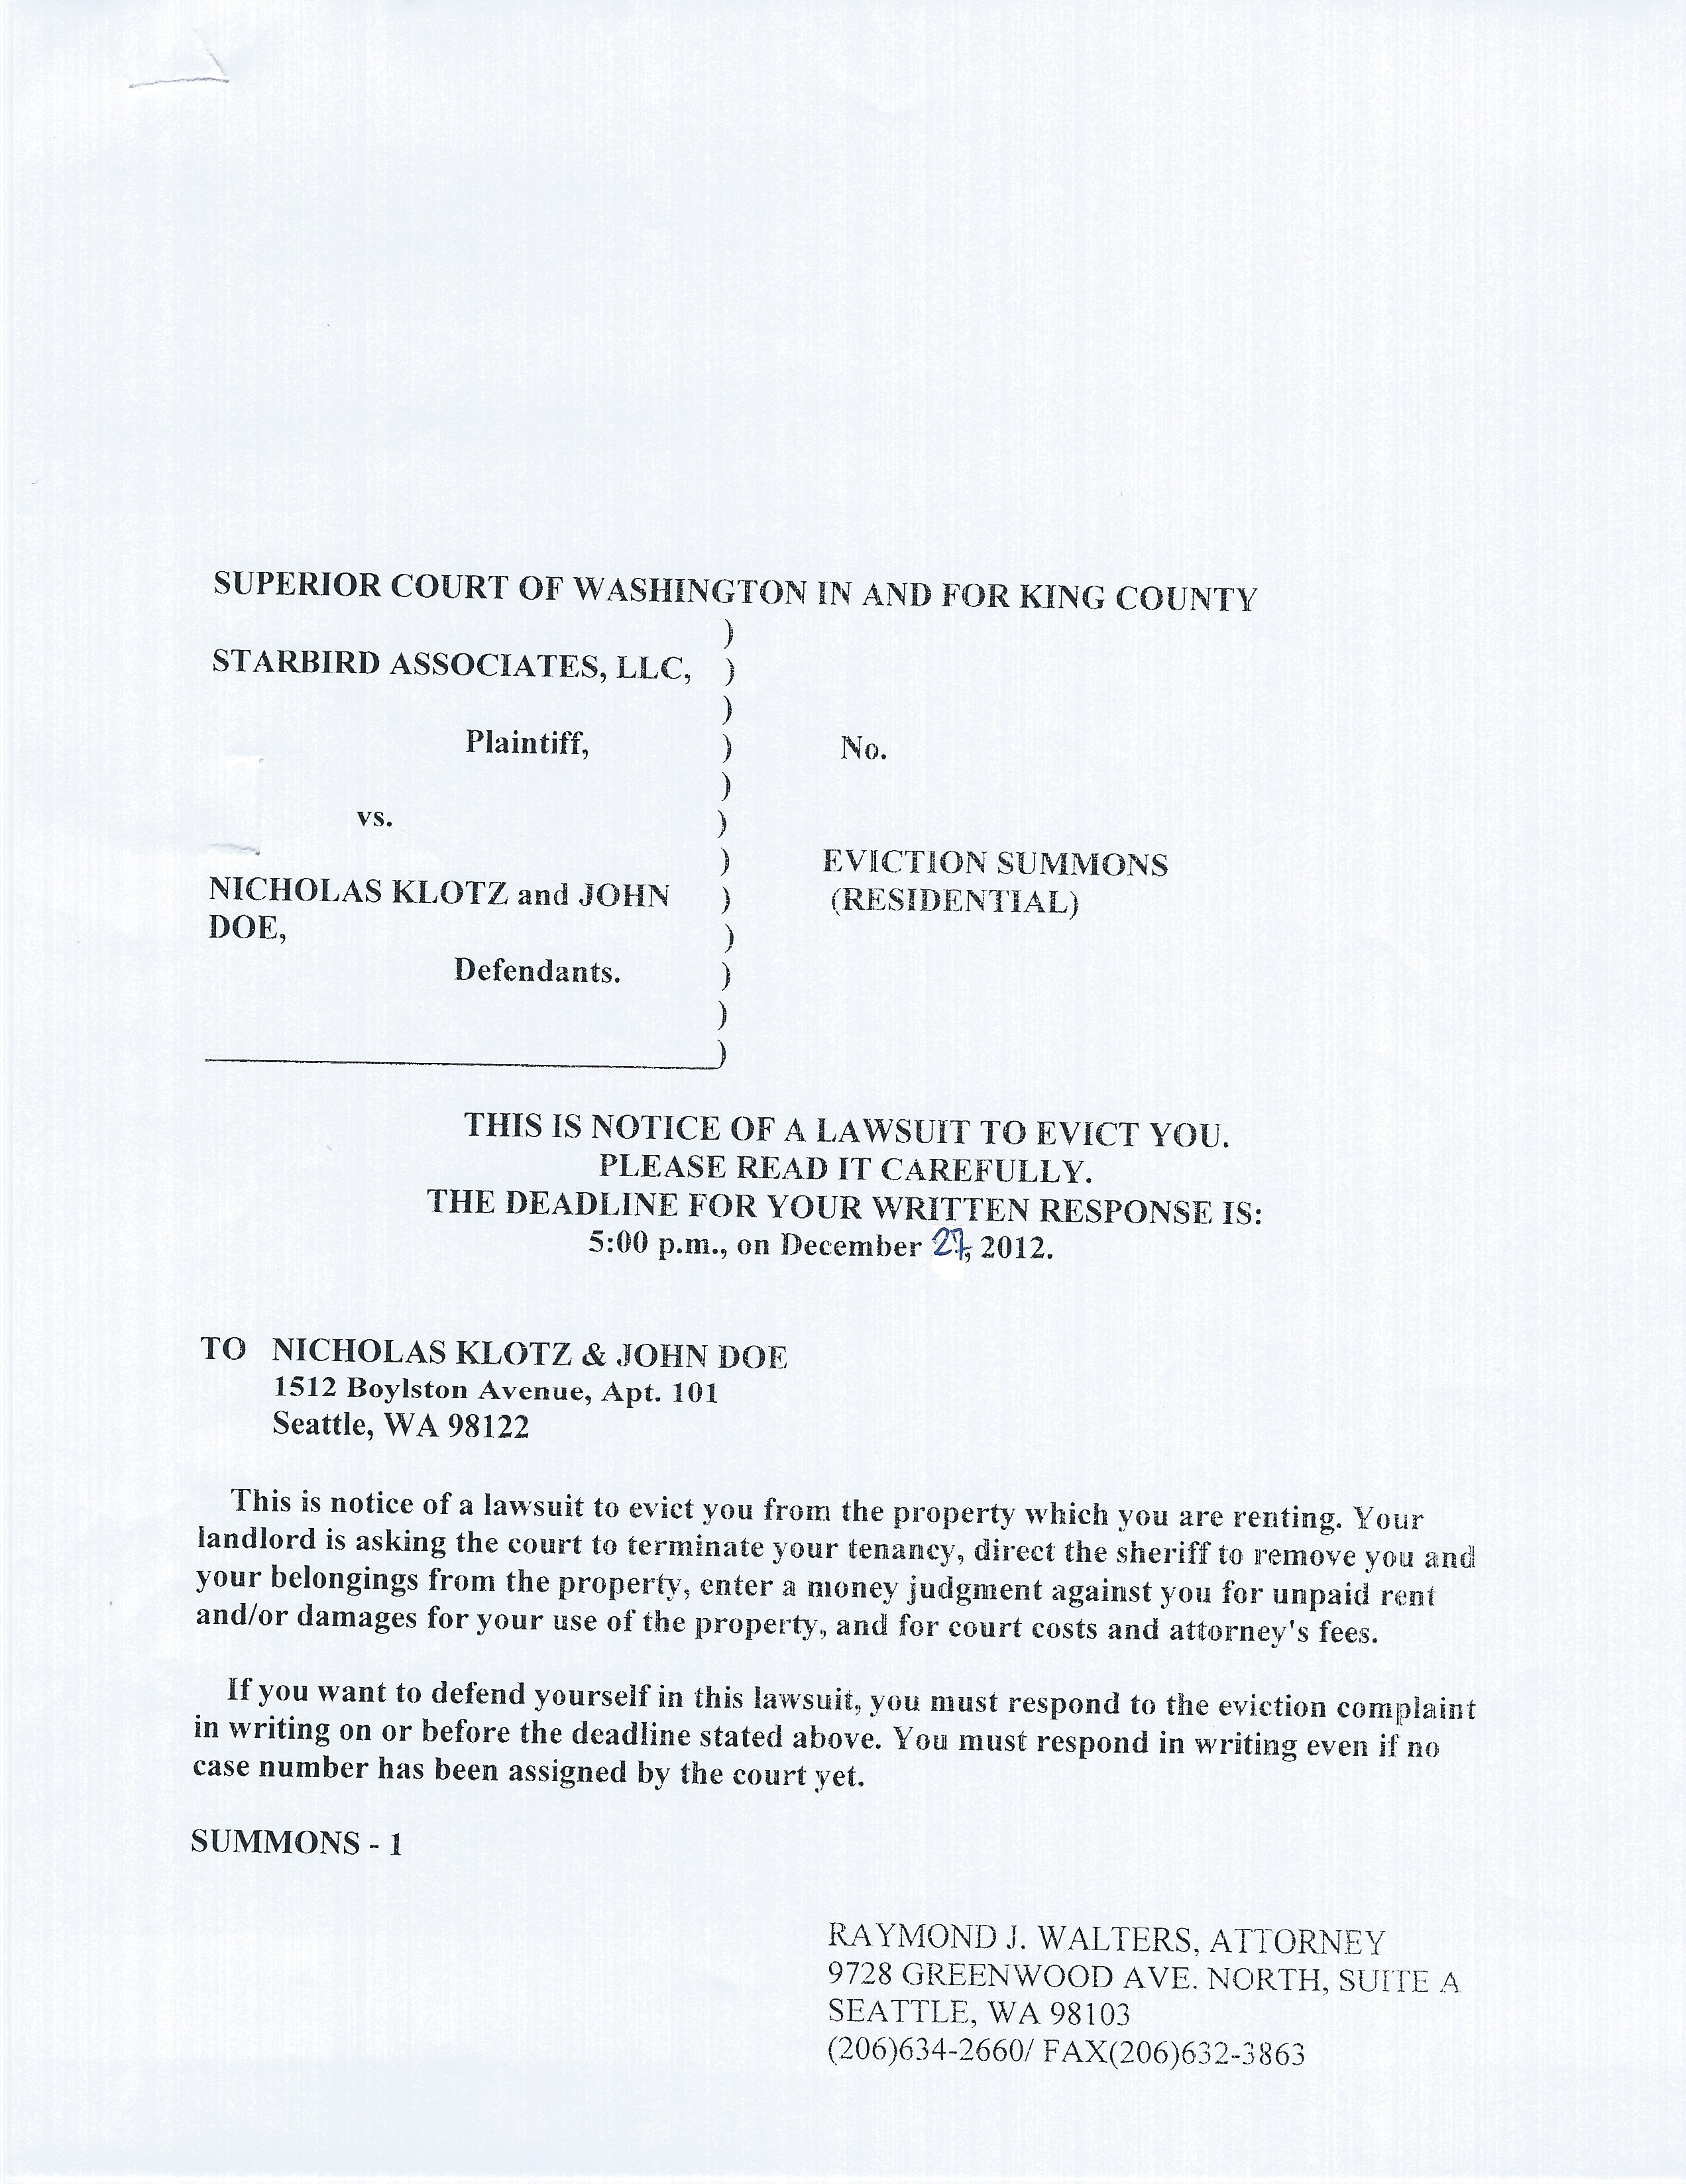 i received a residential eviction summons and notice of